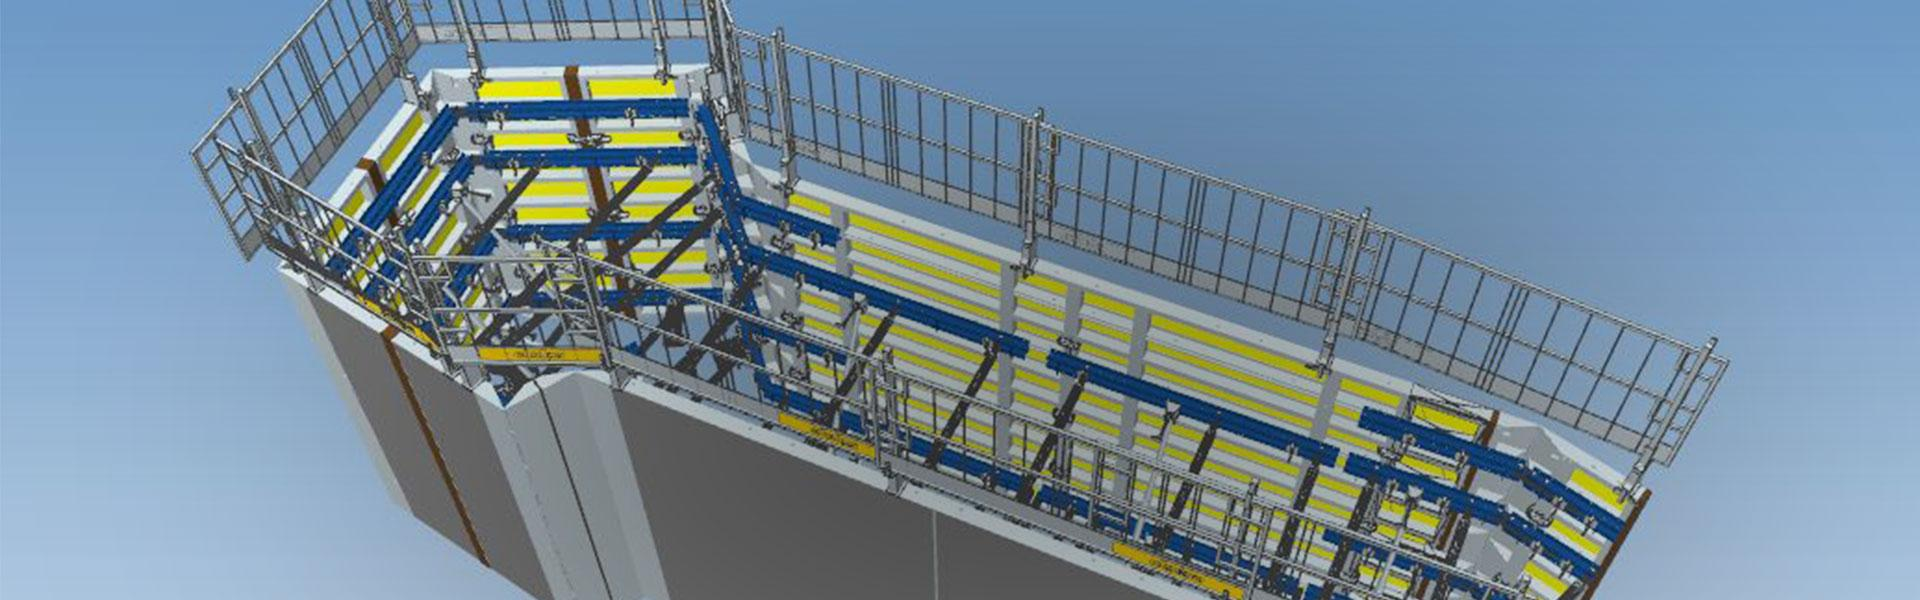 BIM model of construction site